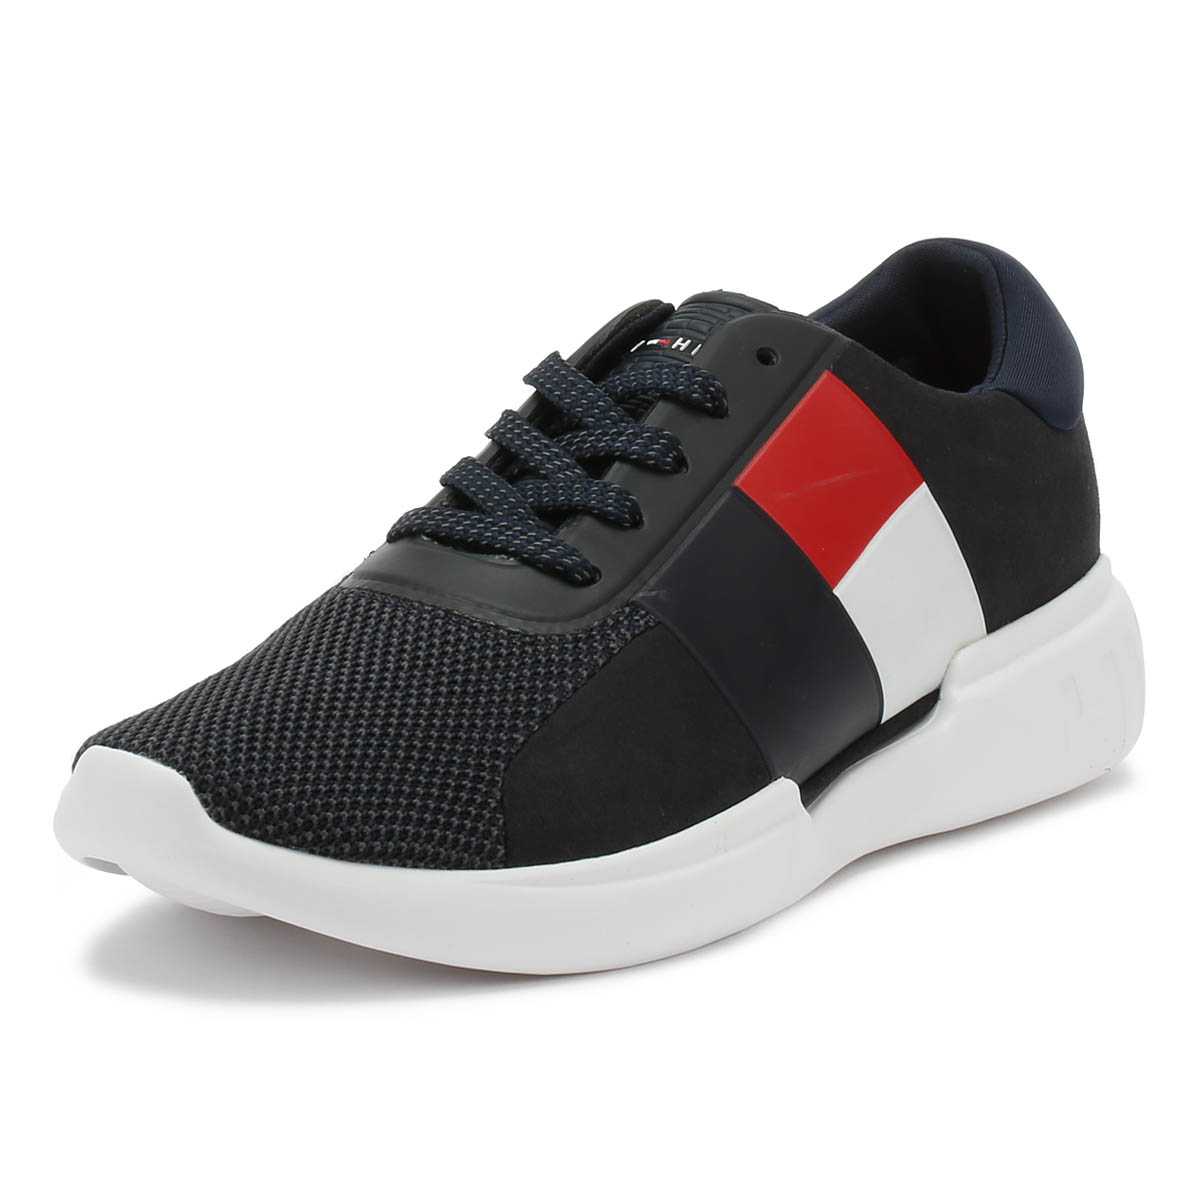 4632e3e9d67f Details about Tommy Hilfiger Mens Trainers Midnight Lighweight Sport Casual Running  Shoes